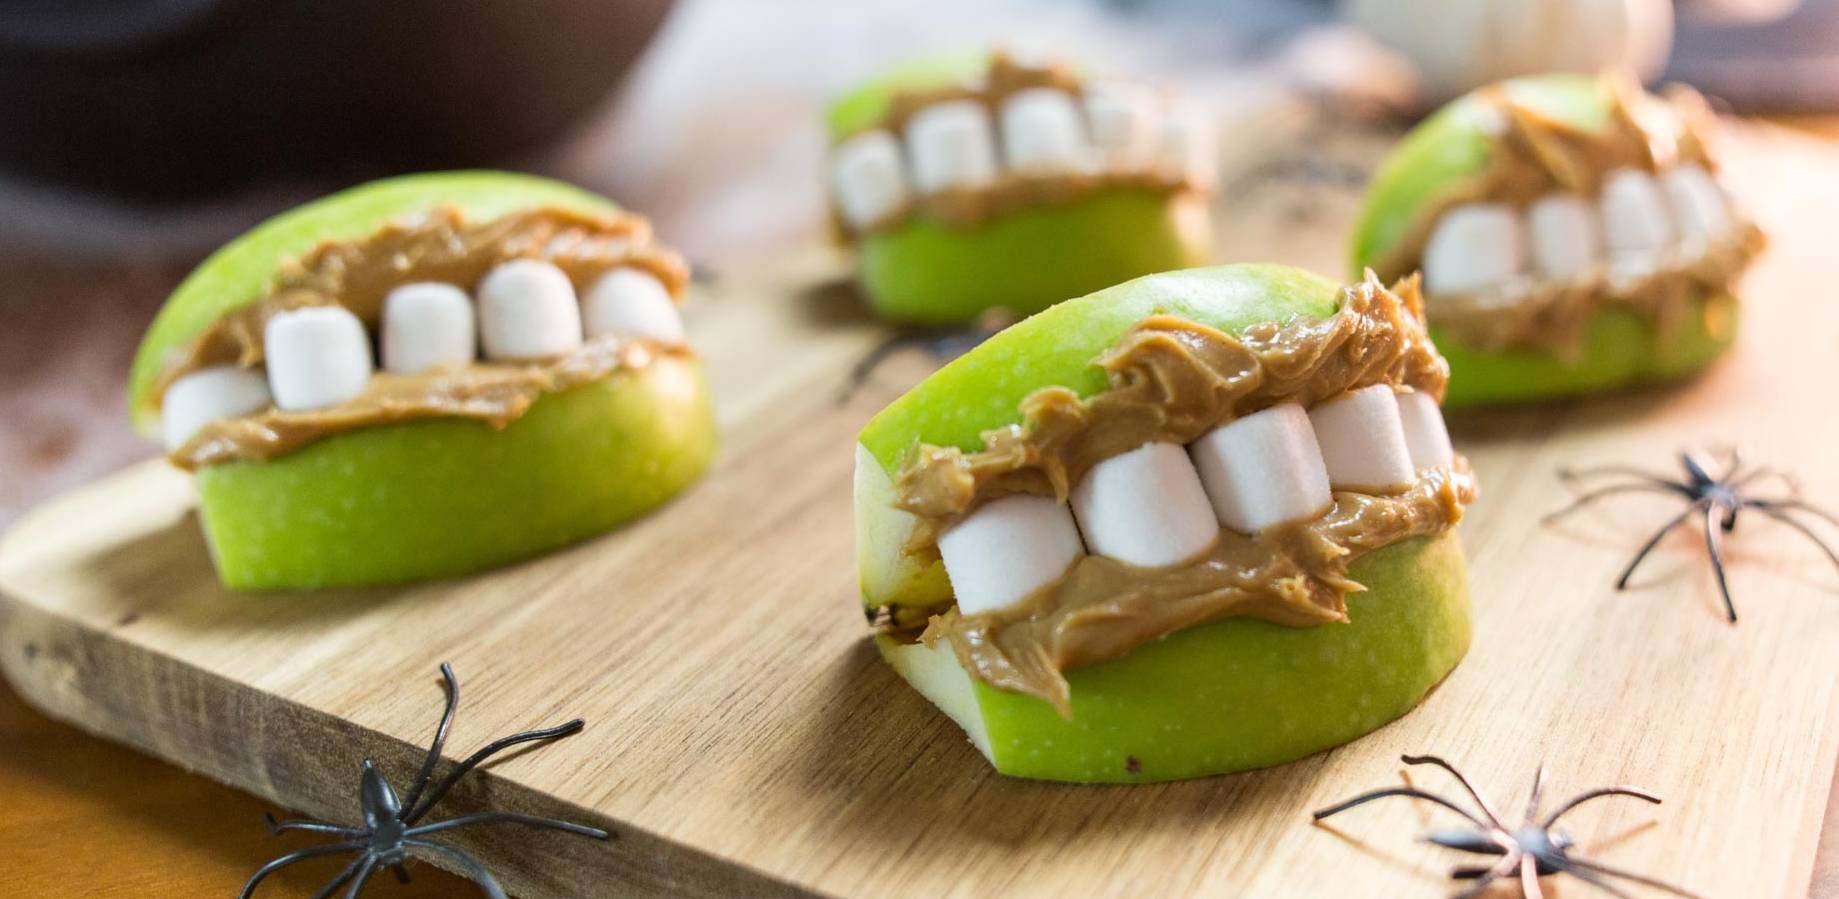 Dentiers Dhalloween Mes Recettes